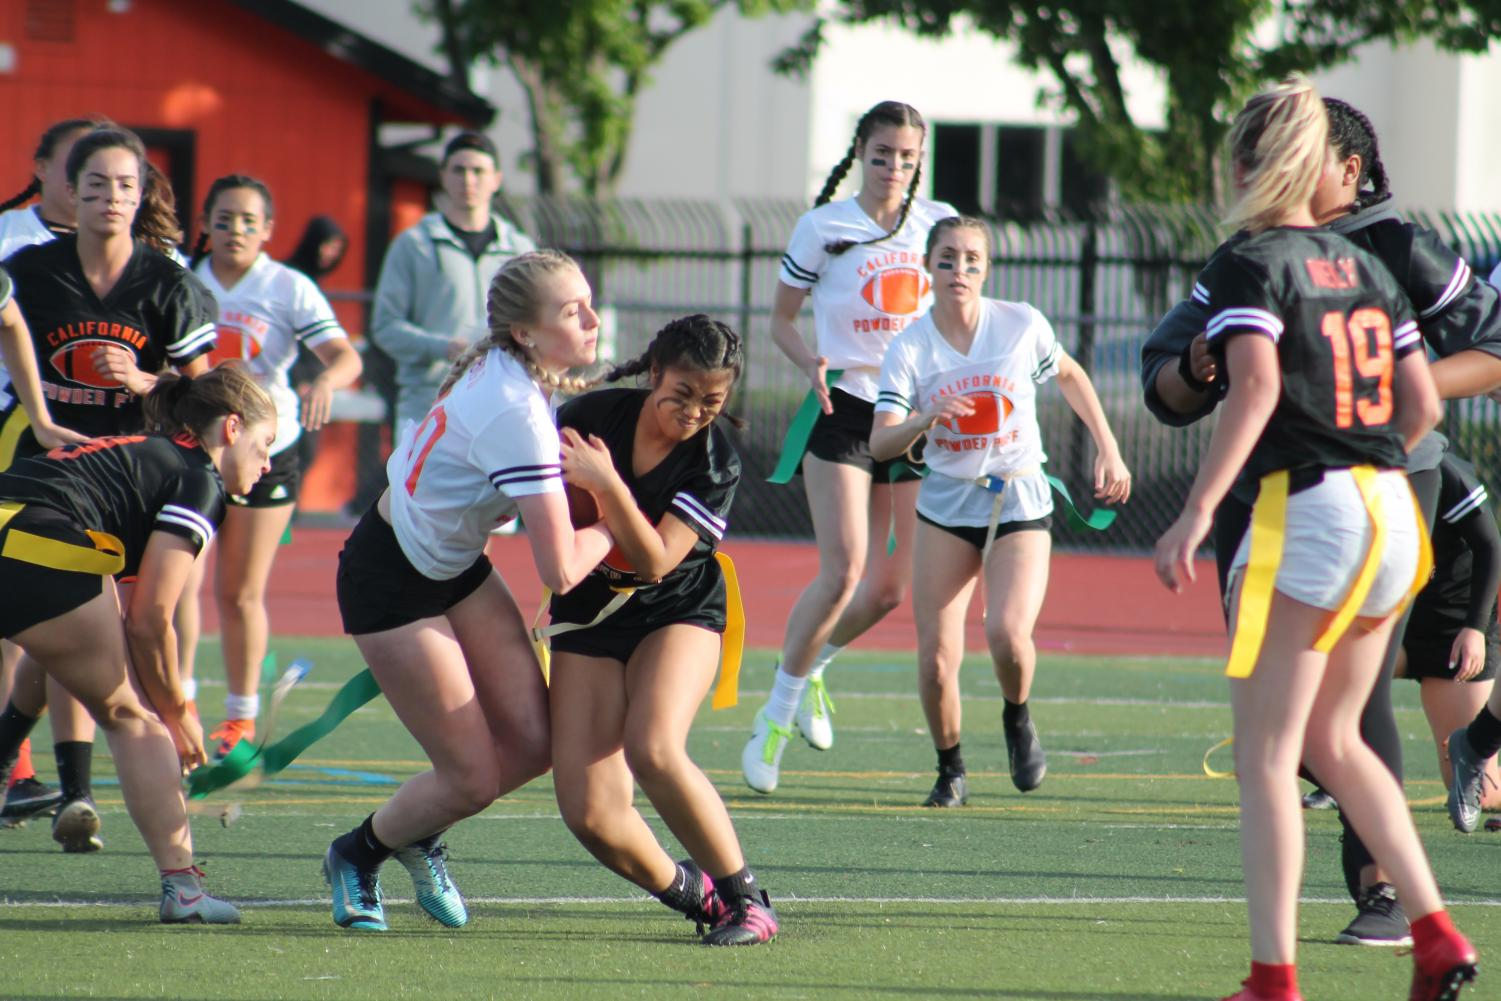 Players fight for control of the ball in last year's powderpuff game. Little did they know that this would Cal's final time hosting the event.